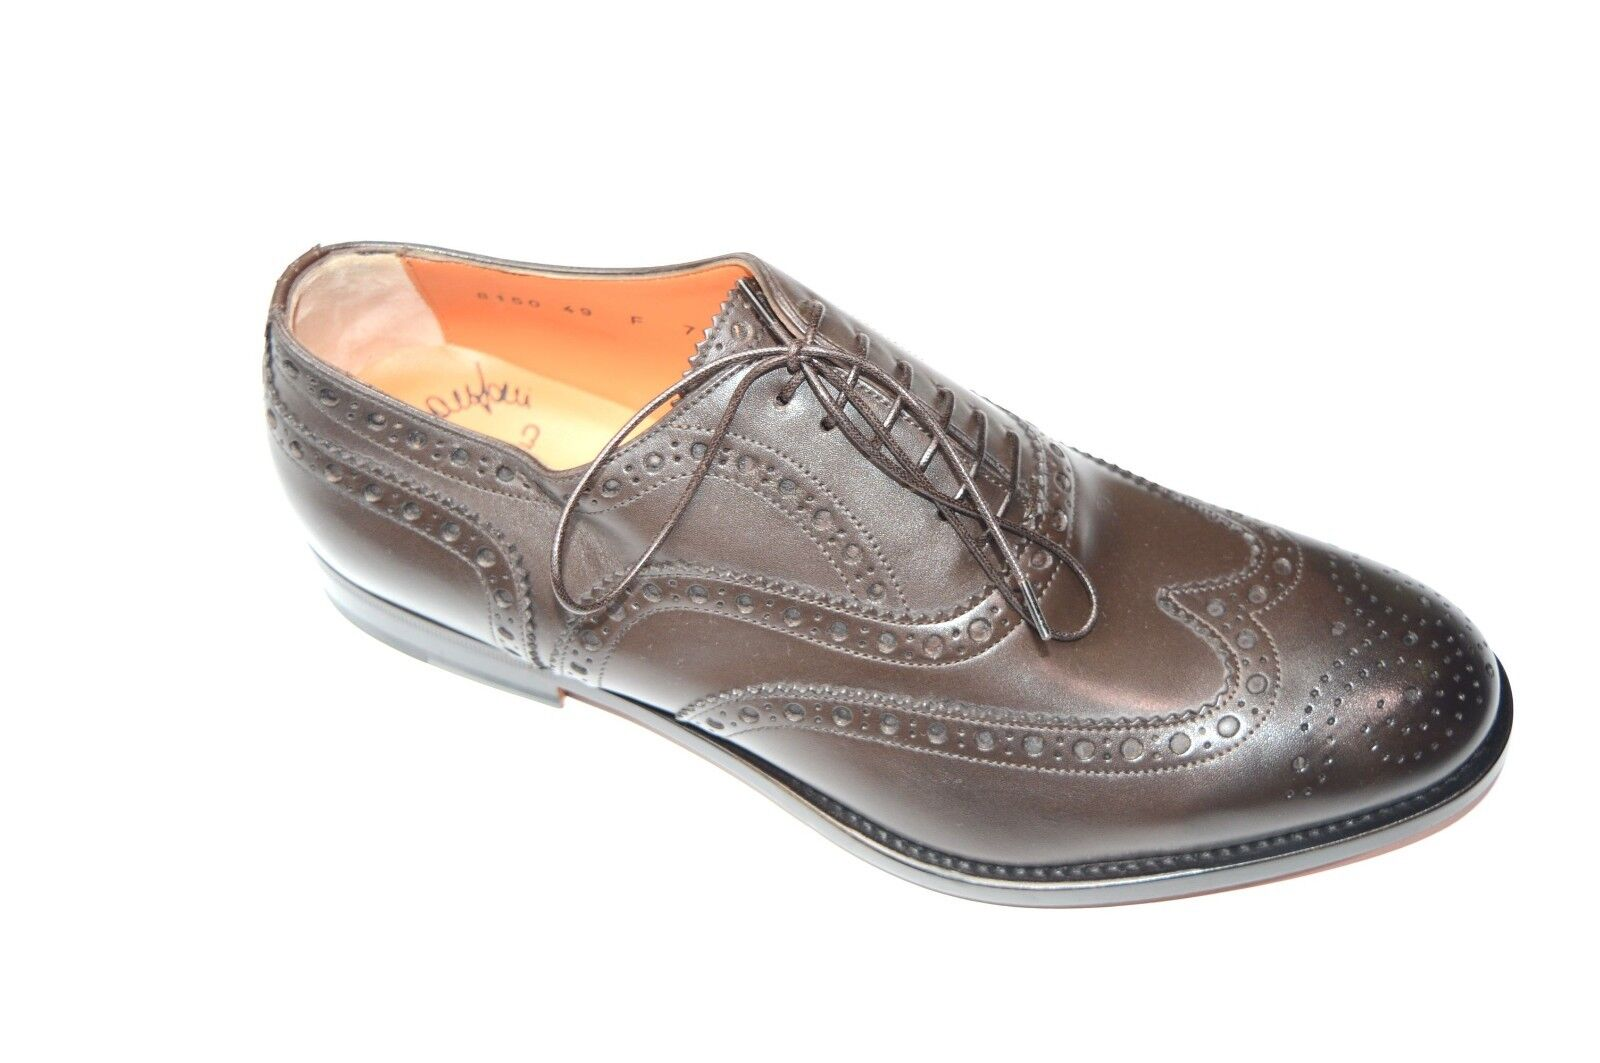 NEW SANTONI Dress Brown Pelle Shoes  SIZE Eu Eu Eu 41 Uk 7 Us 8 (50R) 1b41b4